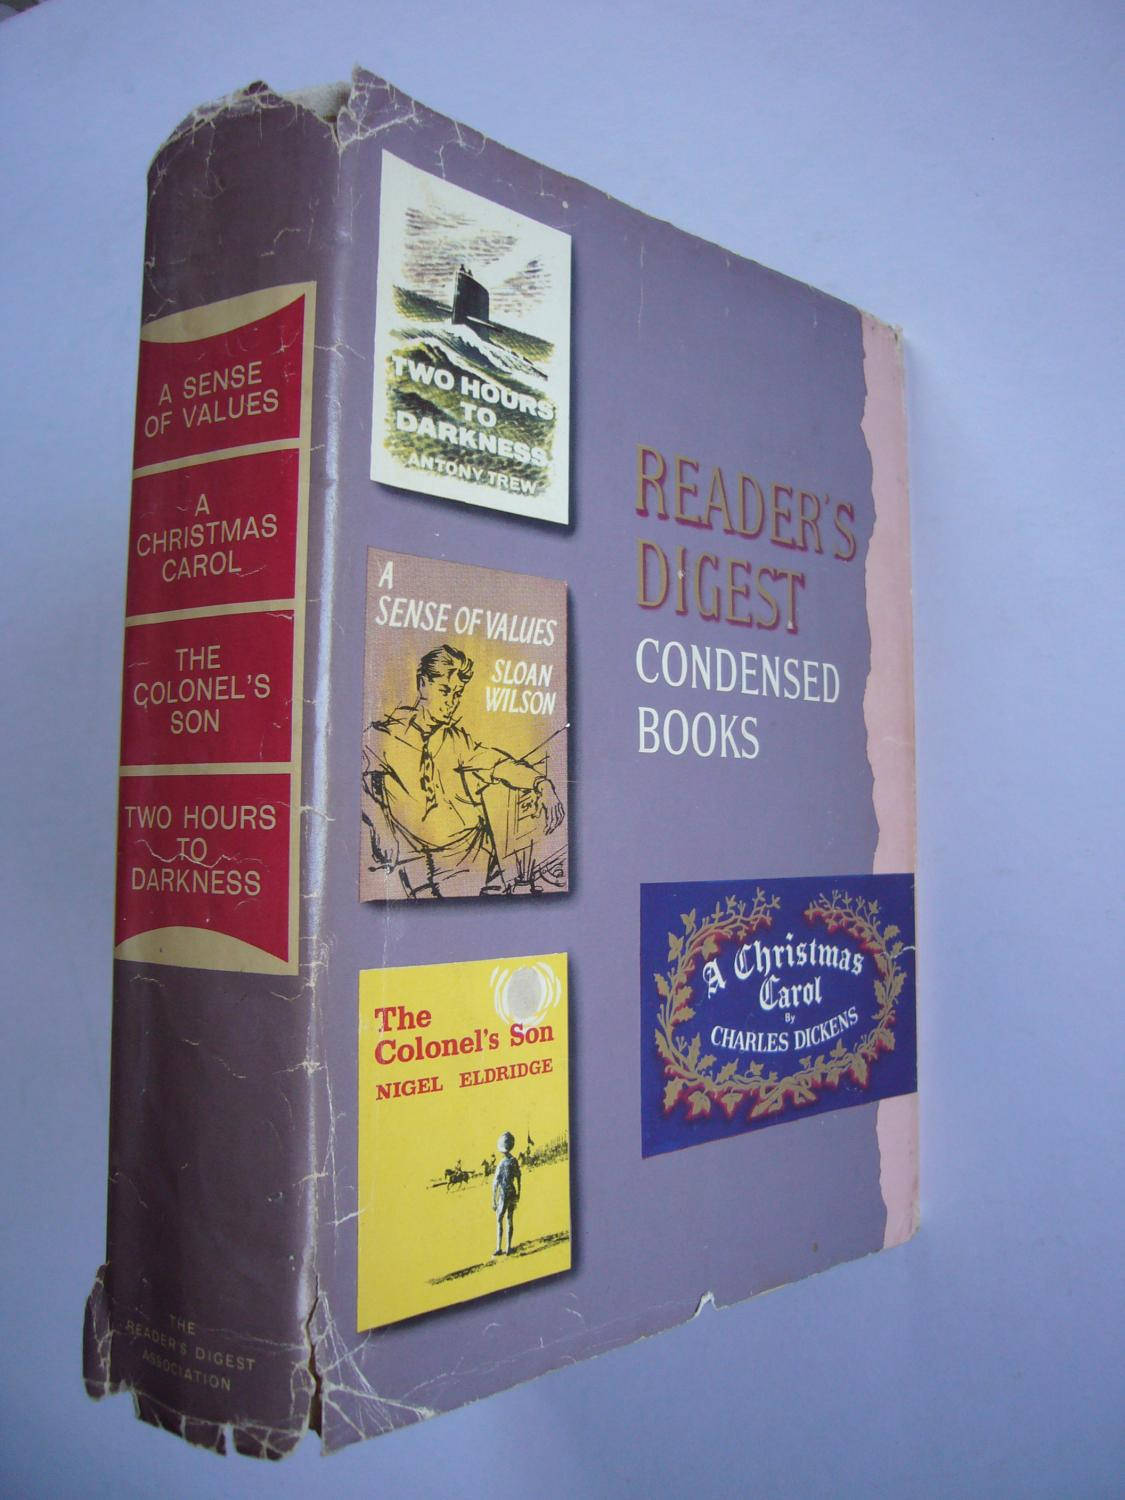 Reader S Digest Condensed Books 1963 A Sense Of Values Two Hours To Darkness A Christmas Carol The Colonel S Son With Dust Jacket By Antony Trew Sloan Wilson Charles Dickens Nigel Eldridge Very Are old readers digest books worth any